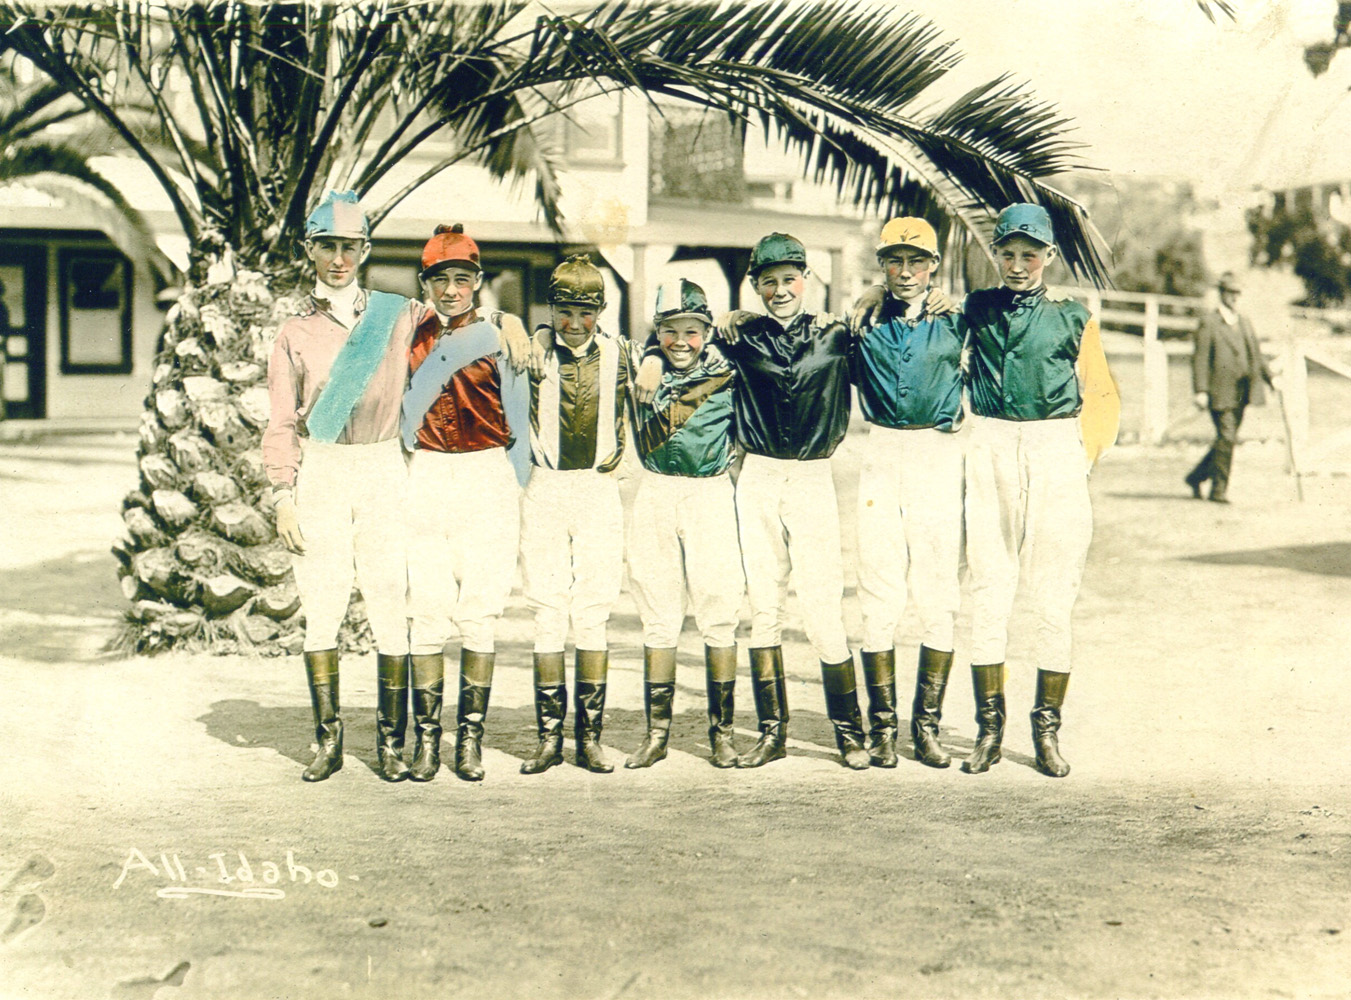 Colorized photograph of a jockey colony featuring Laverne Fator, Mark Fator, Art Mortensen, G. Dick Johnson, Ivan Parke, and two unidentified riders (from left to right) (Museum Collection)